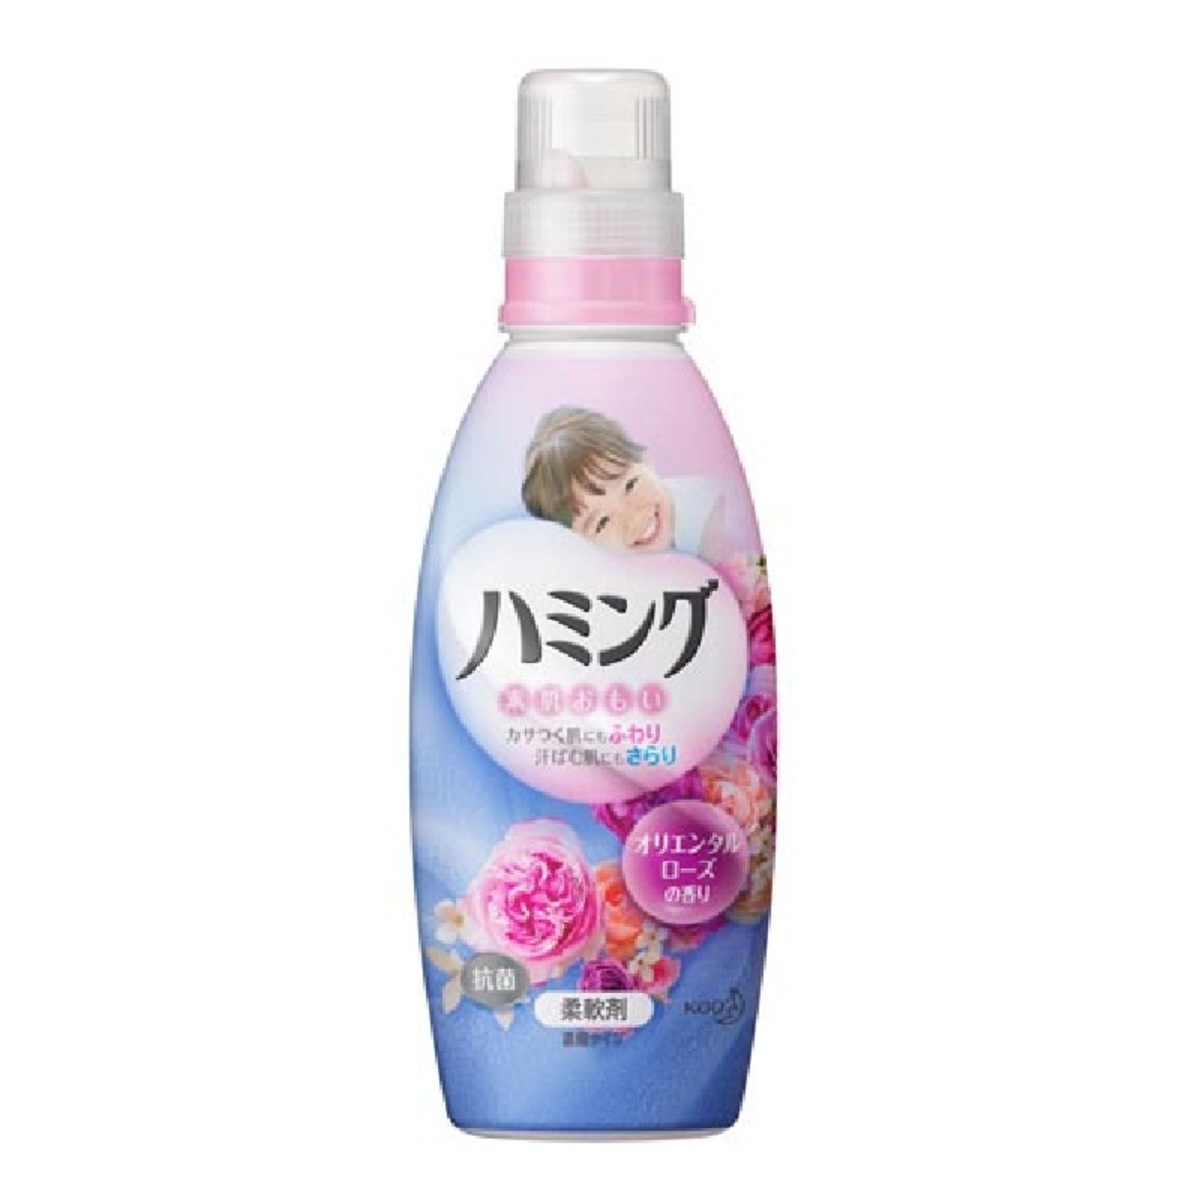 Kao Muscle Anti-Wrinkle Antibacterial Antistatic Concentrated Softener (Pink) # Rose Floral 600ml